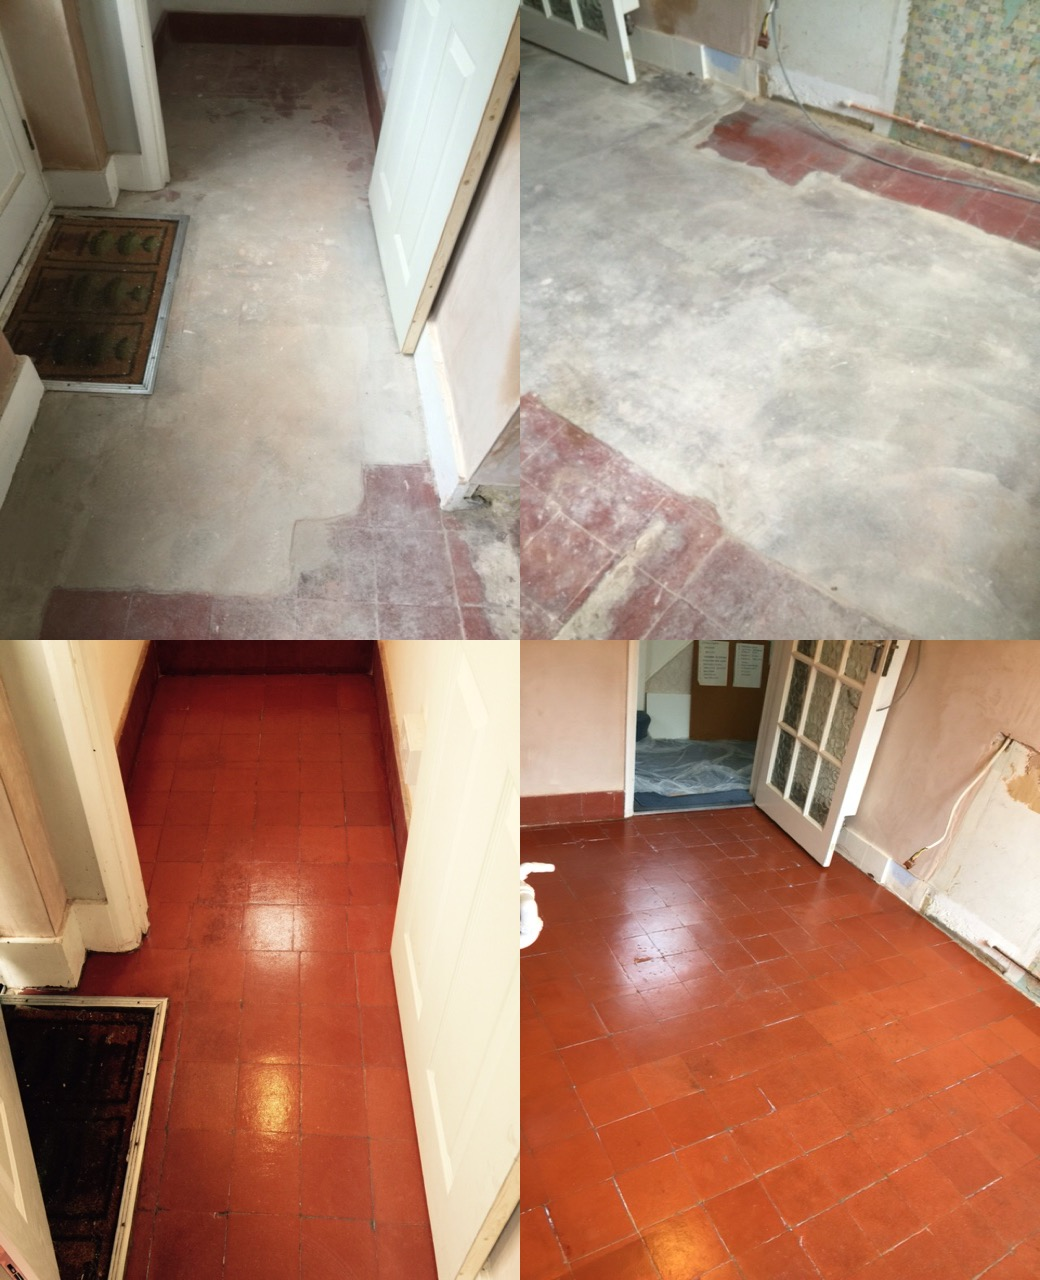 West surrey tile doctor your local tile stone and grout cement and lino covered quarry tiles restored quarry tiled floor before and after restoration woking cleaning stains dailygadgetfo Choice Image